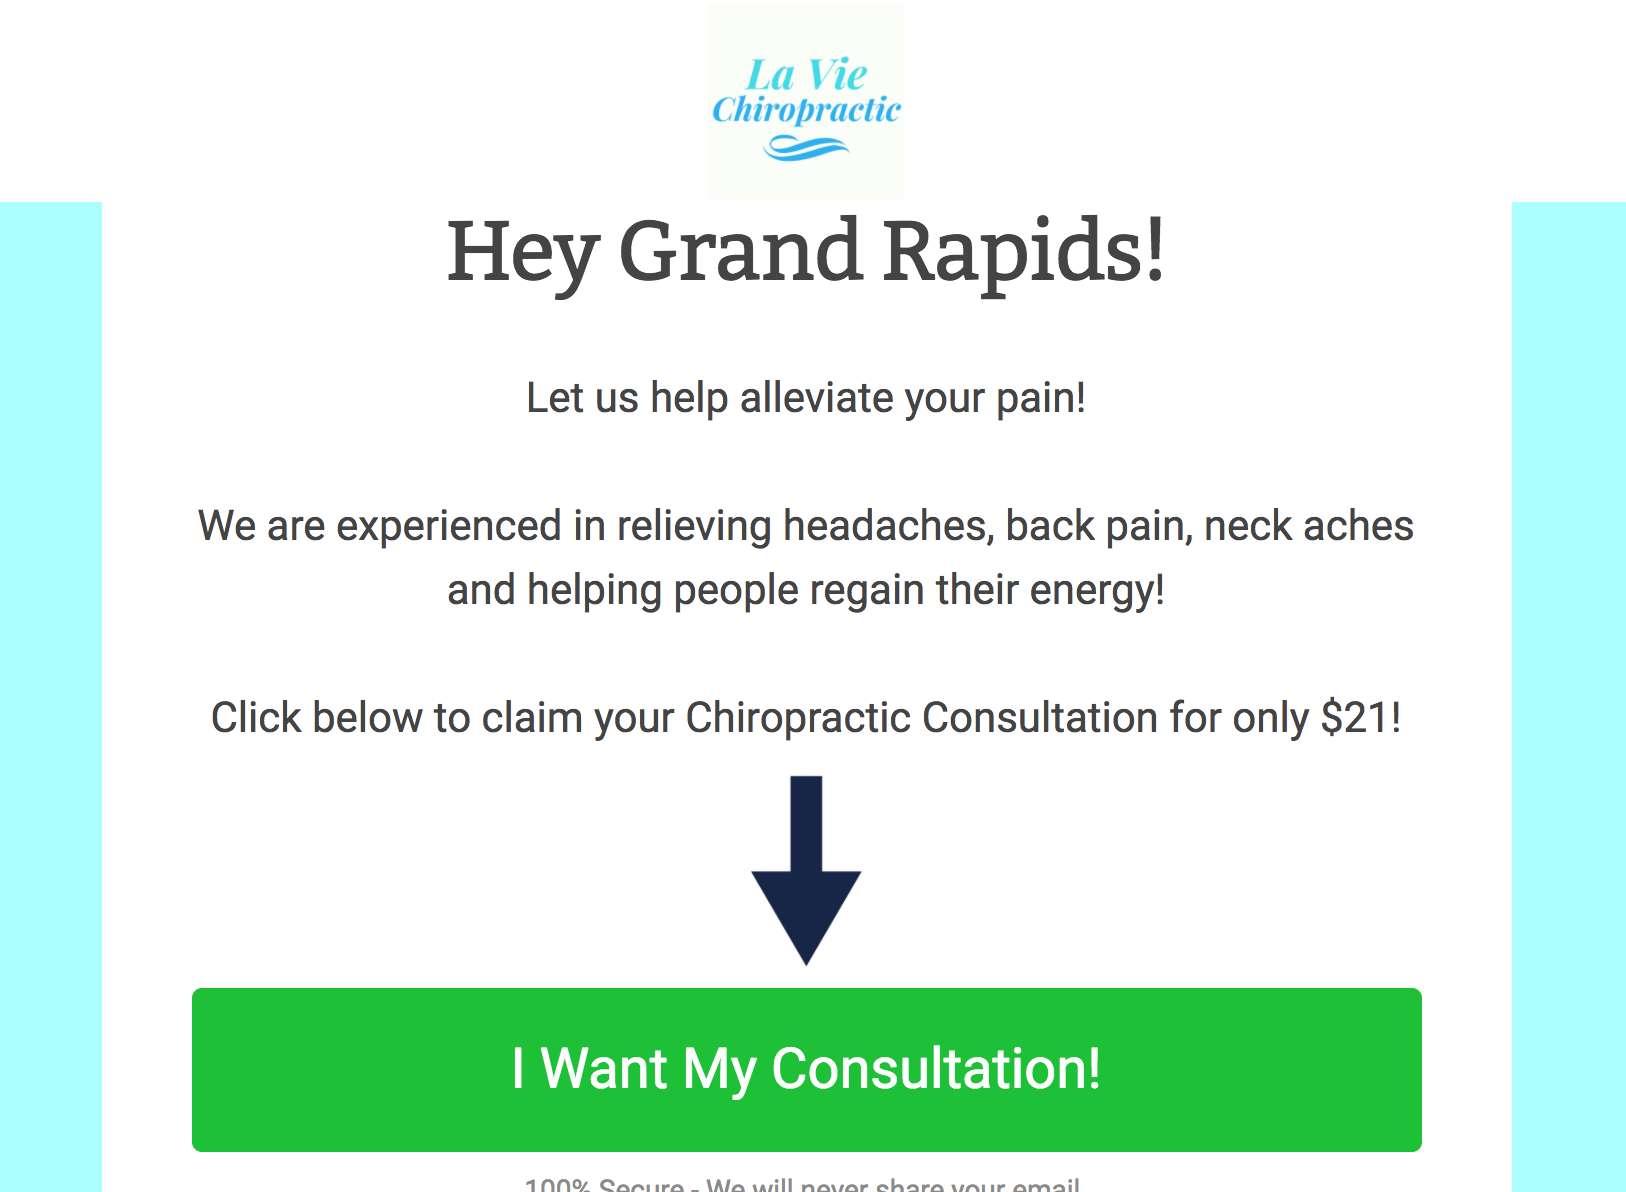 Example of a high-performing landing page for a chiropractor